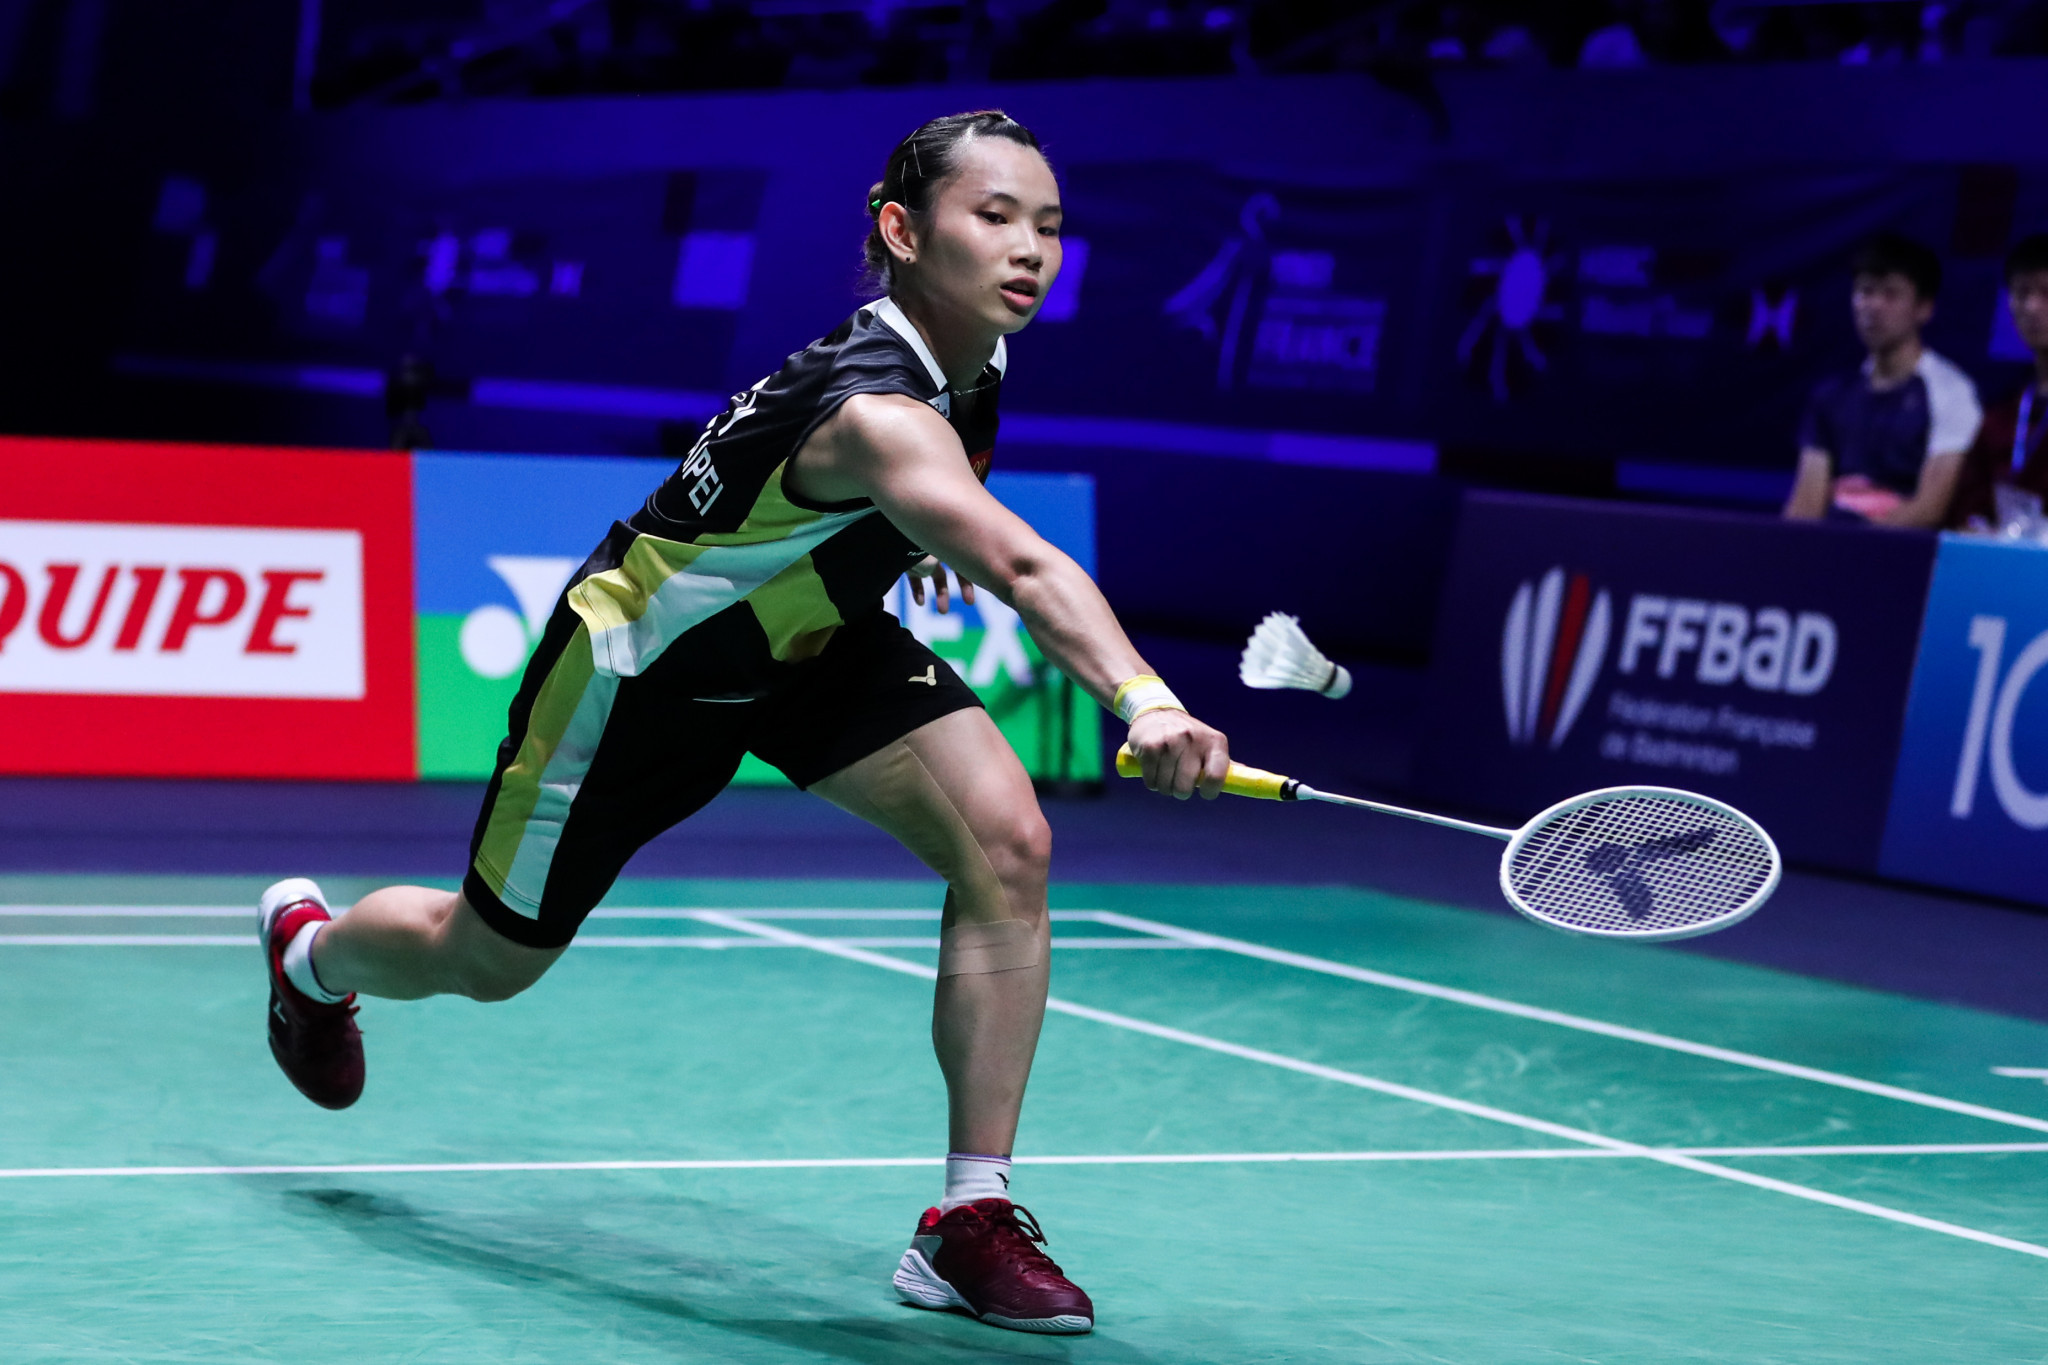 Top seed Tai Tzu-Ying will compete in the women's semi-finals ©Getty Images